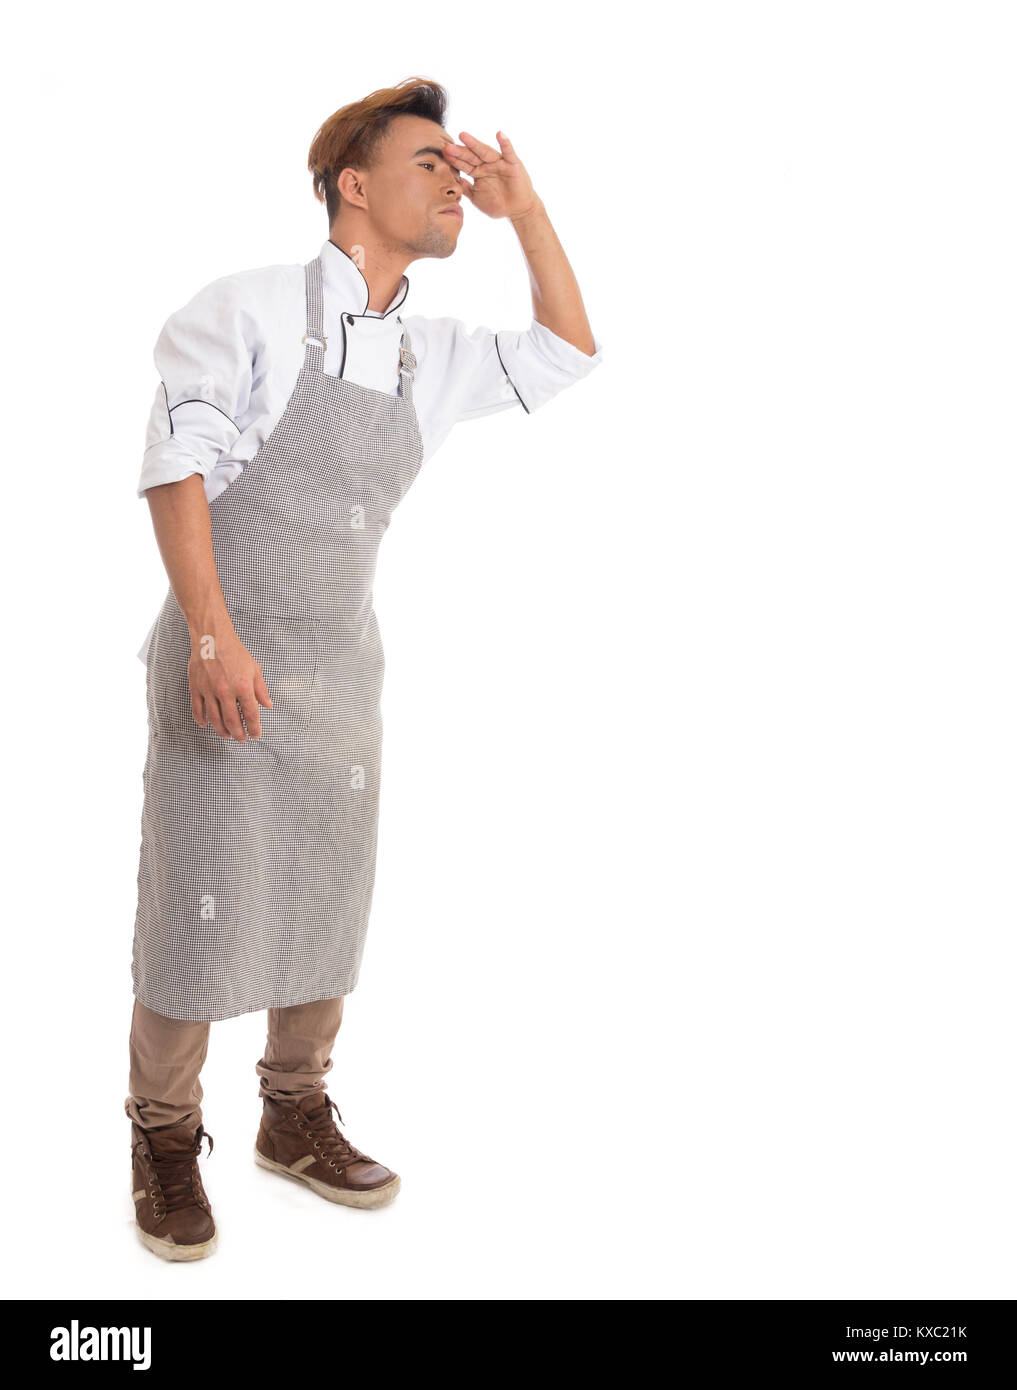 Man puts hand on the forehead and looks for something. Young cook wears apron. Full body image. Isolated on white - Stock Image